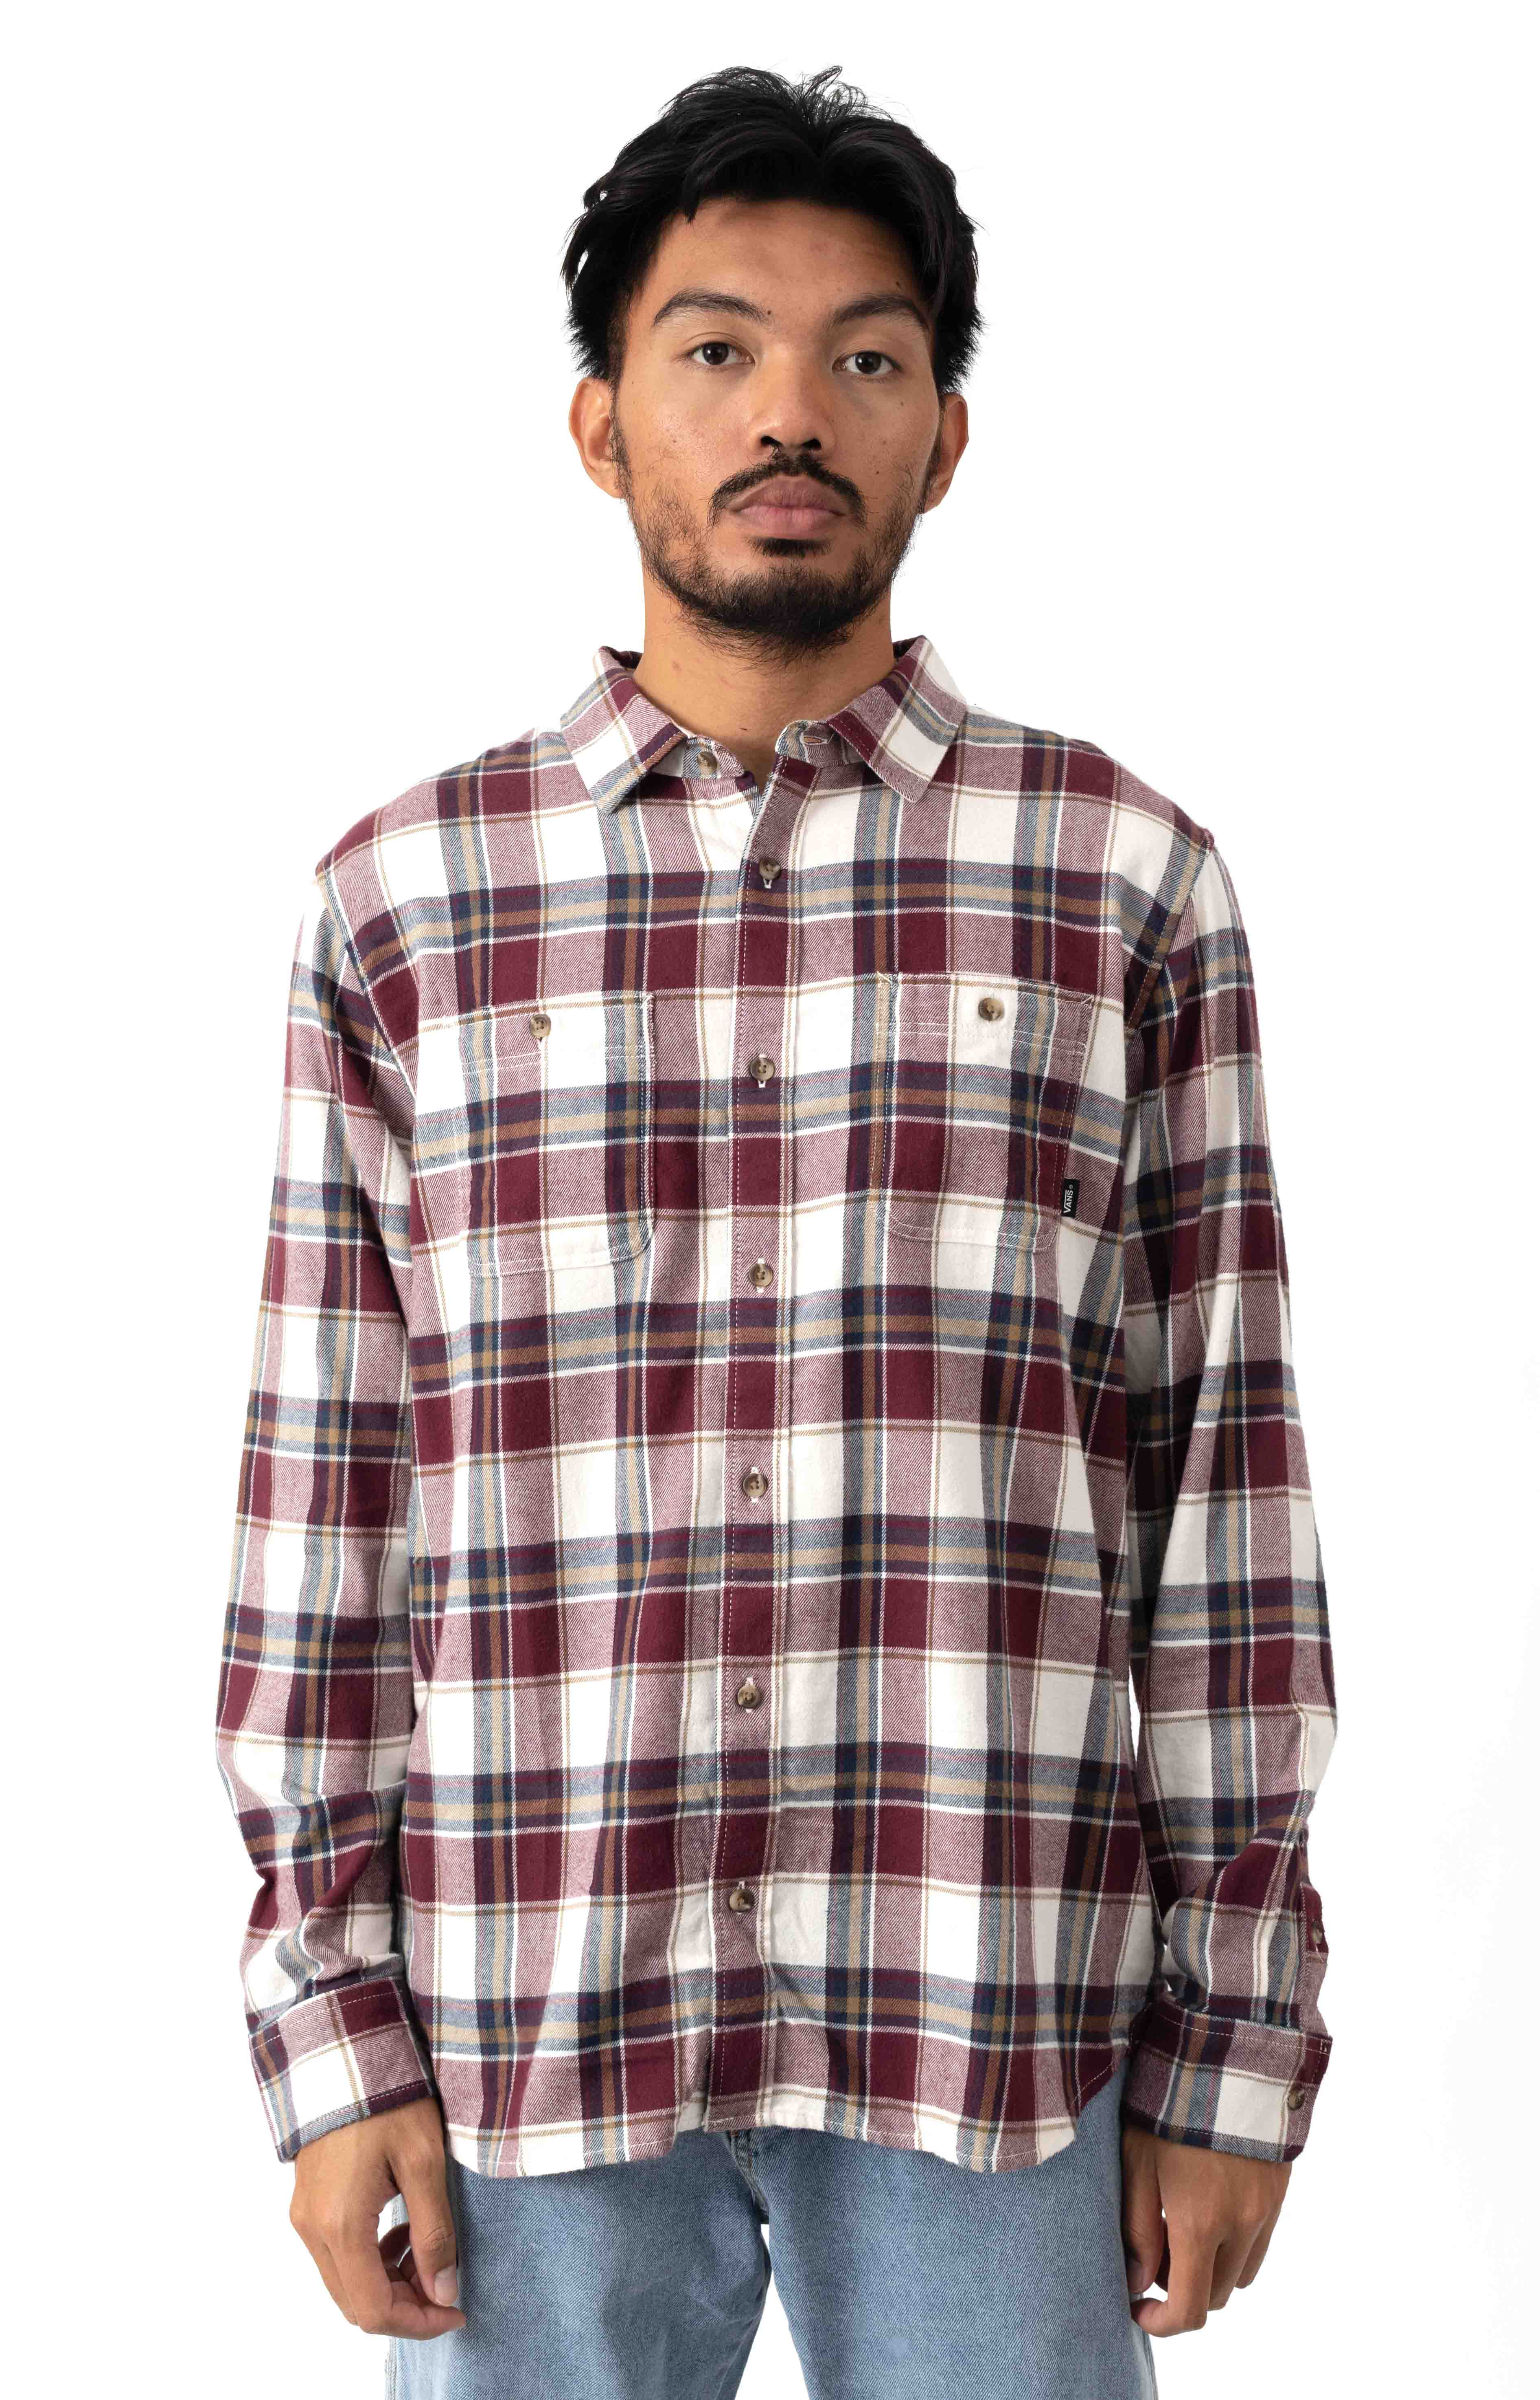 Banfield III Button-Up Shirt - Antique White/Port Royale